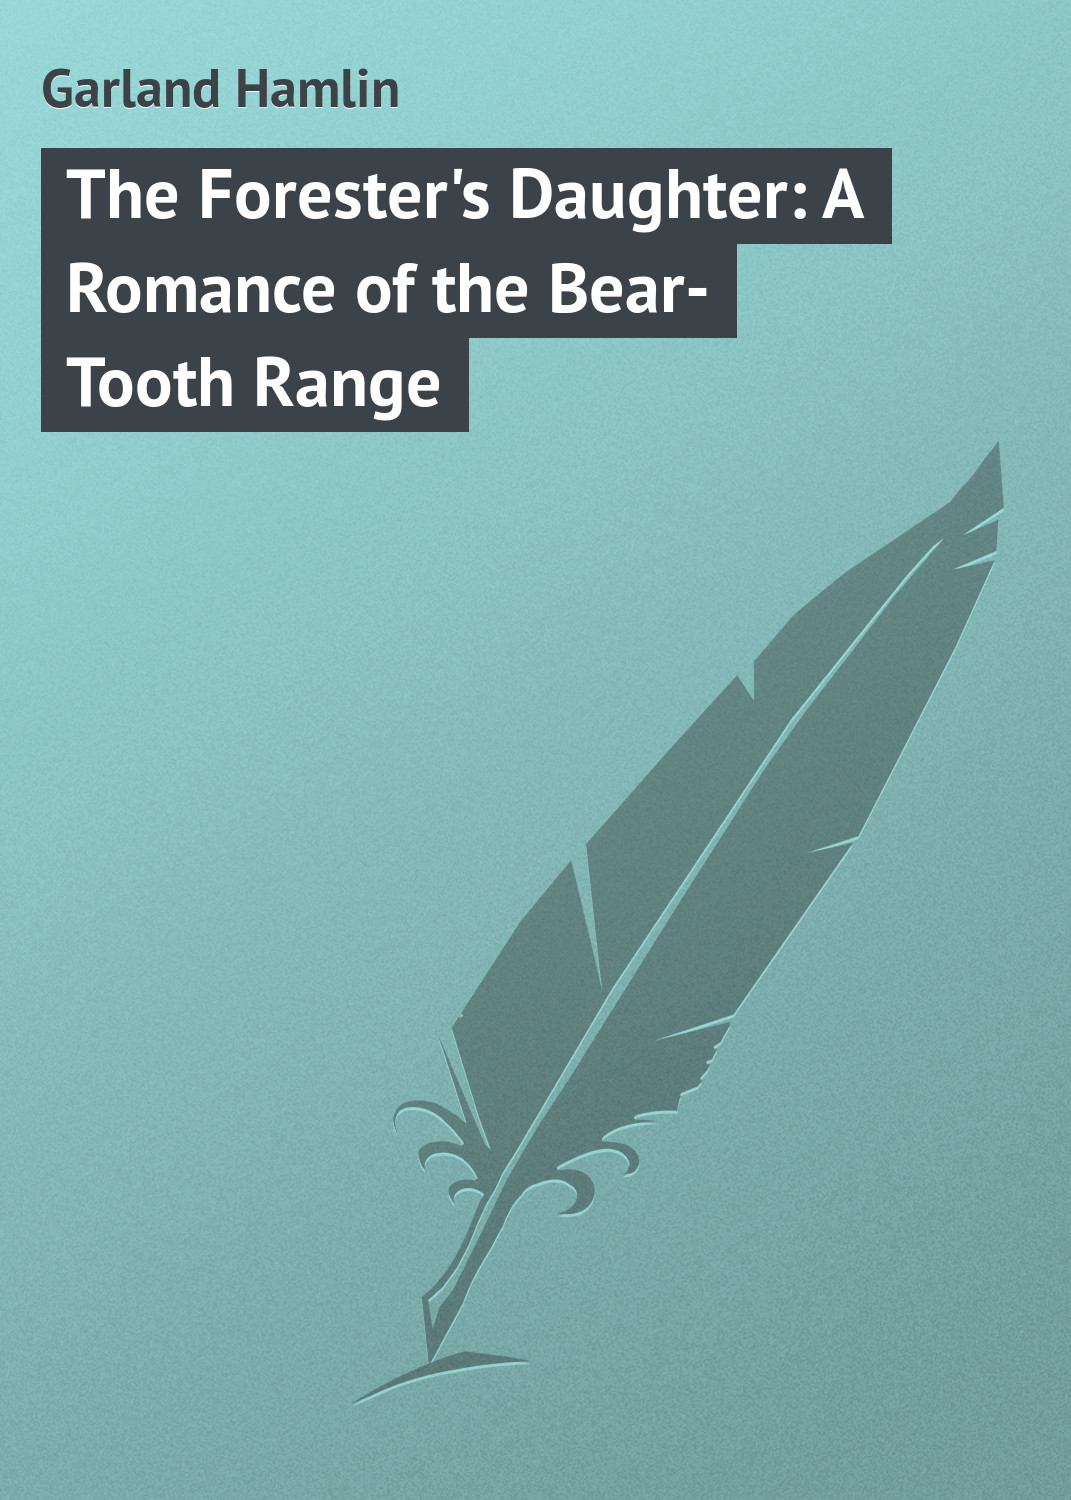 Garland Hamlin The Forester's Daughter: A Romance of the Bear-Tooth Range